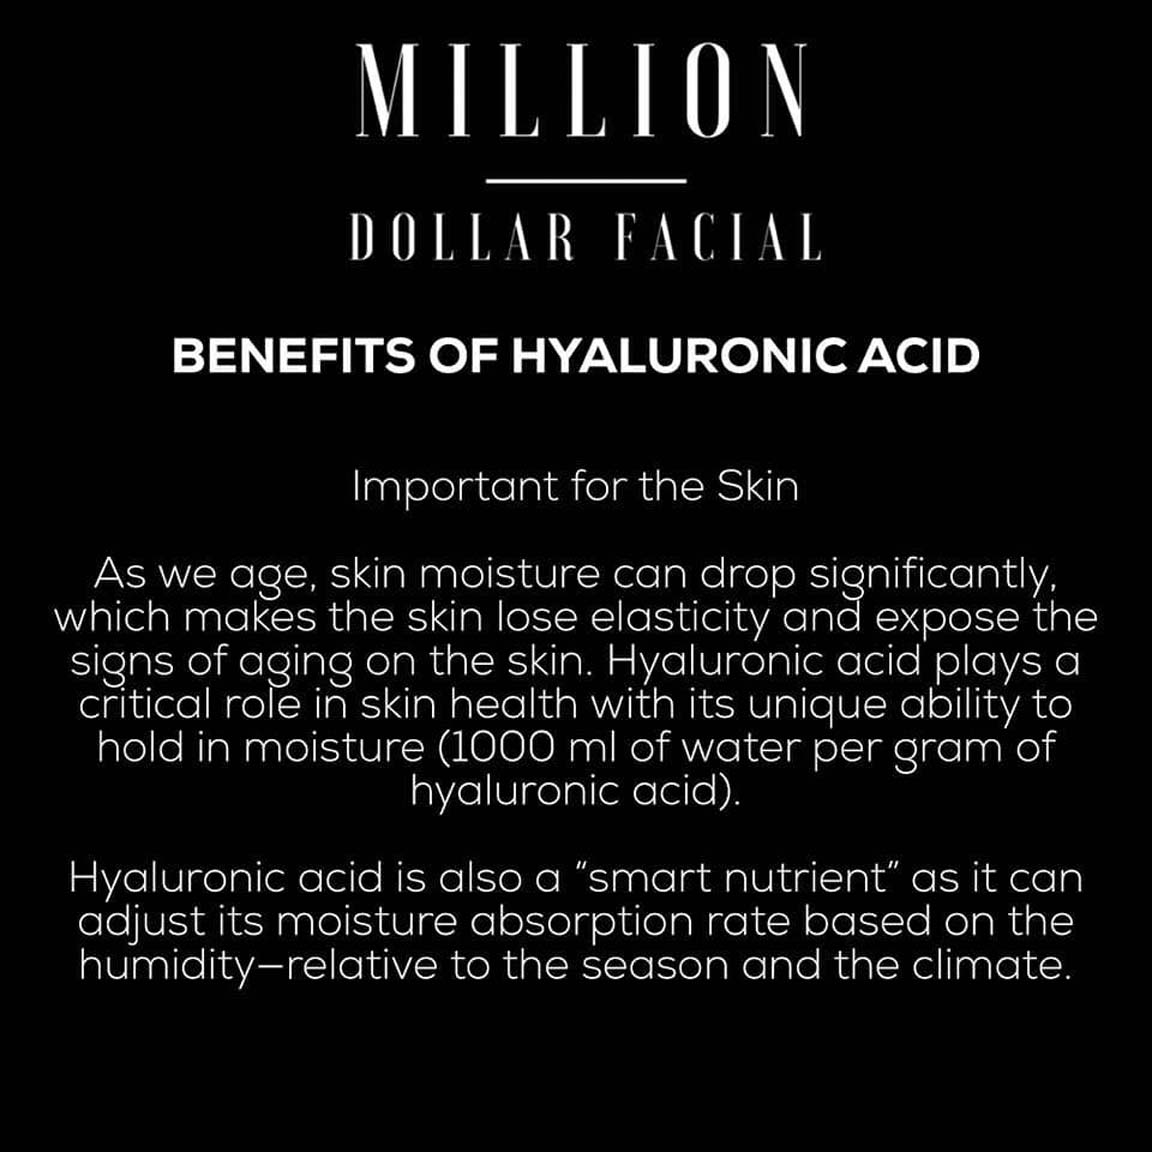 Benefits of The Million Dollar Facial